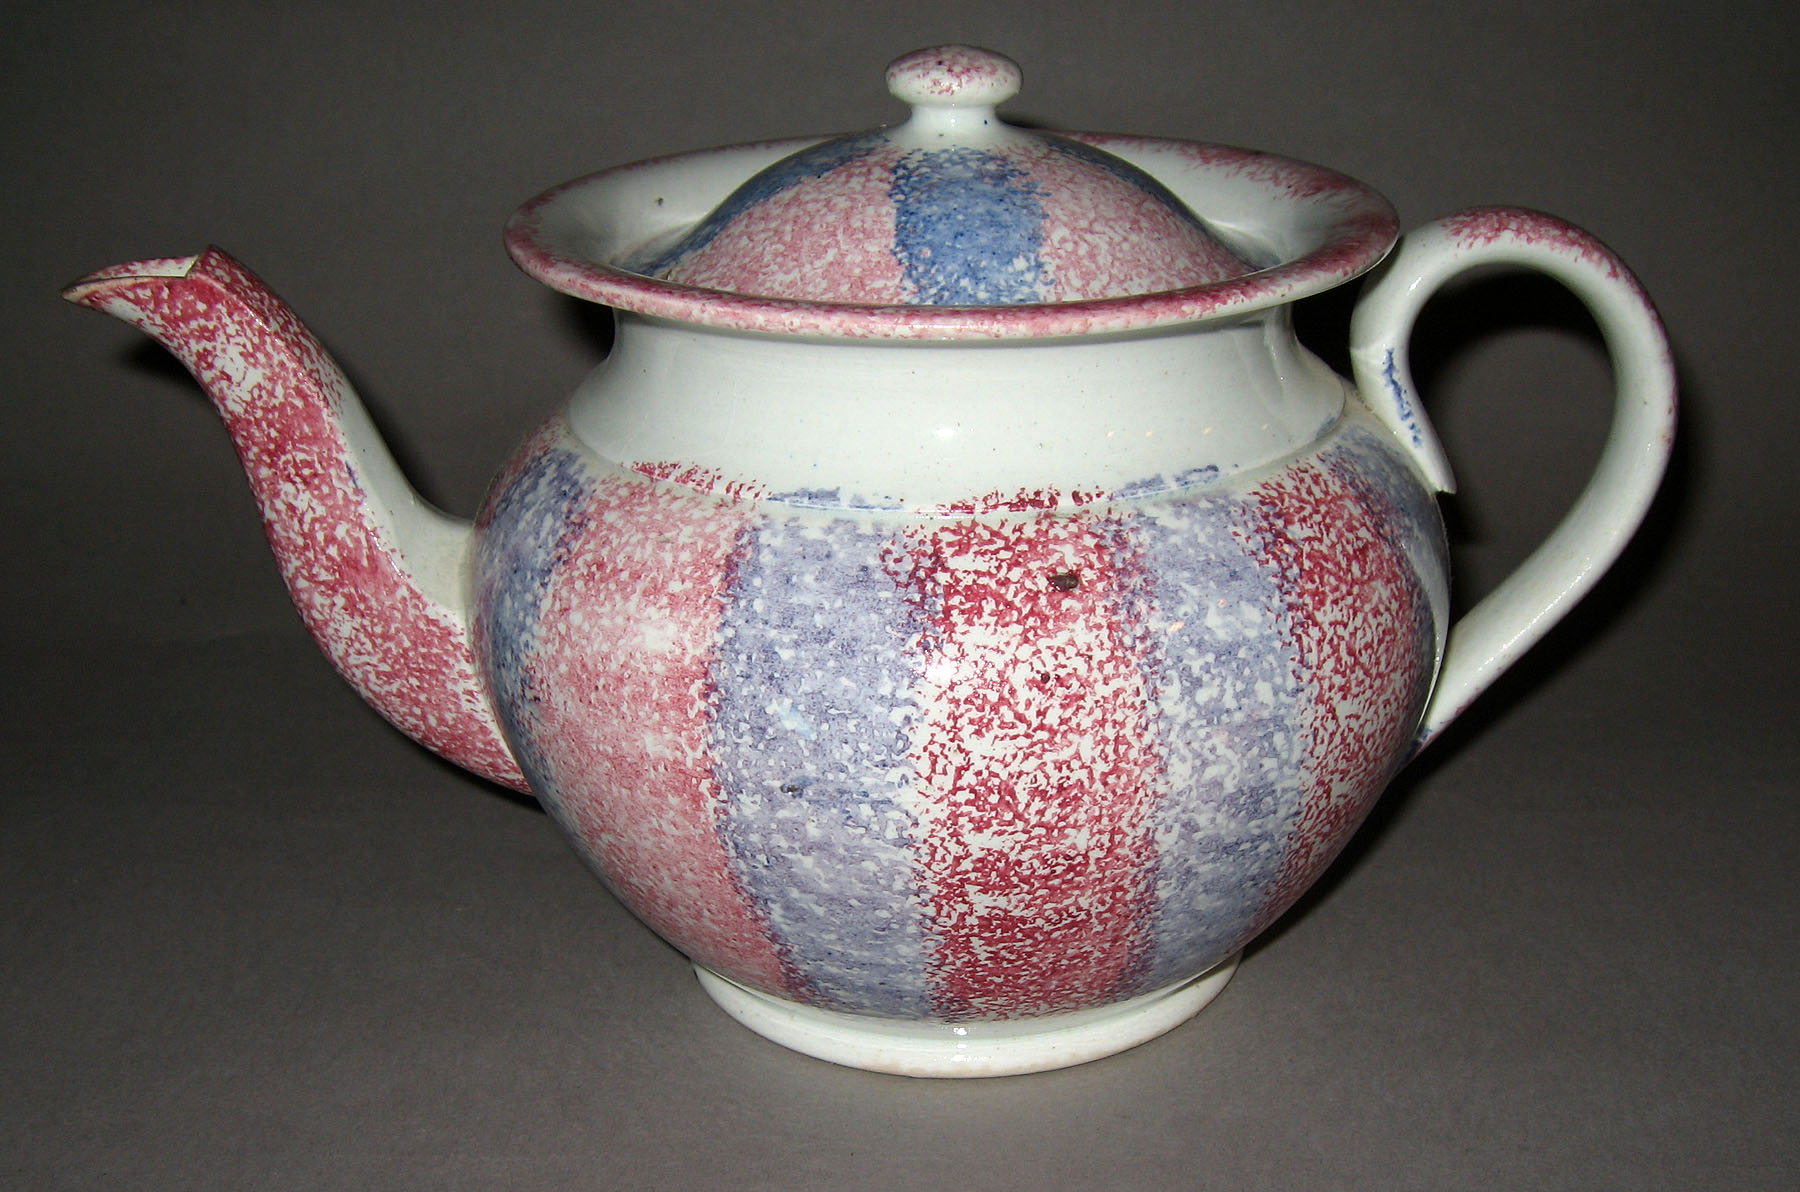 1965.0760 A, B Striped spatterware teapot